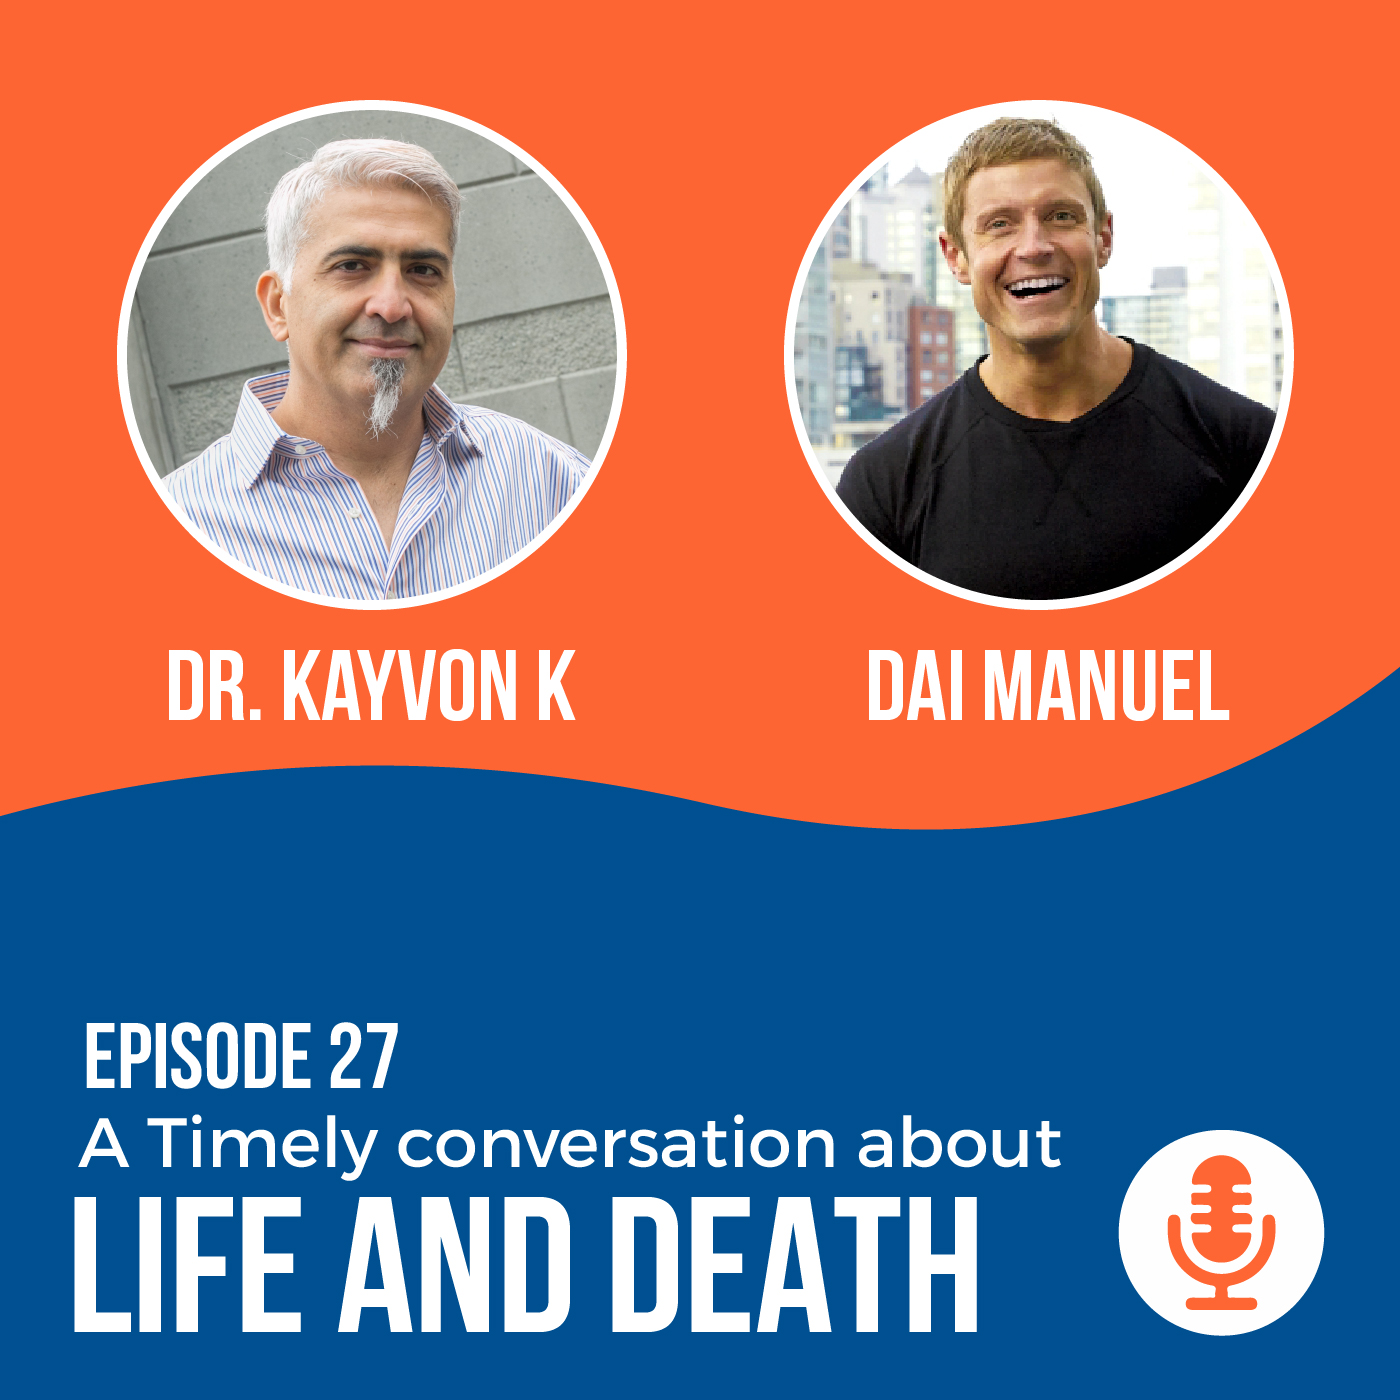 Episode 27 A Timely Conversation About Life and Death